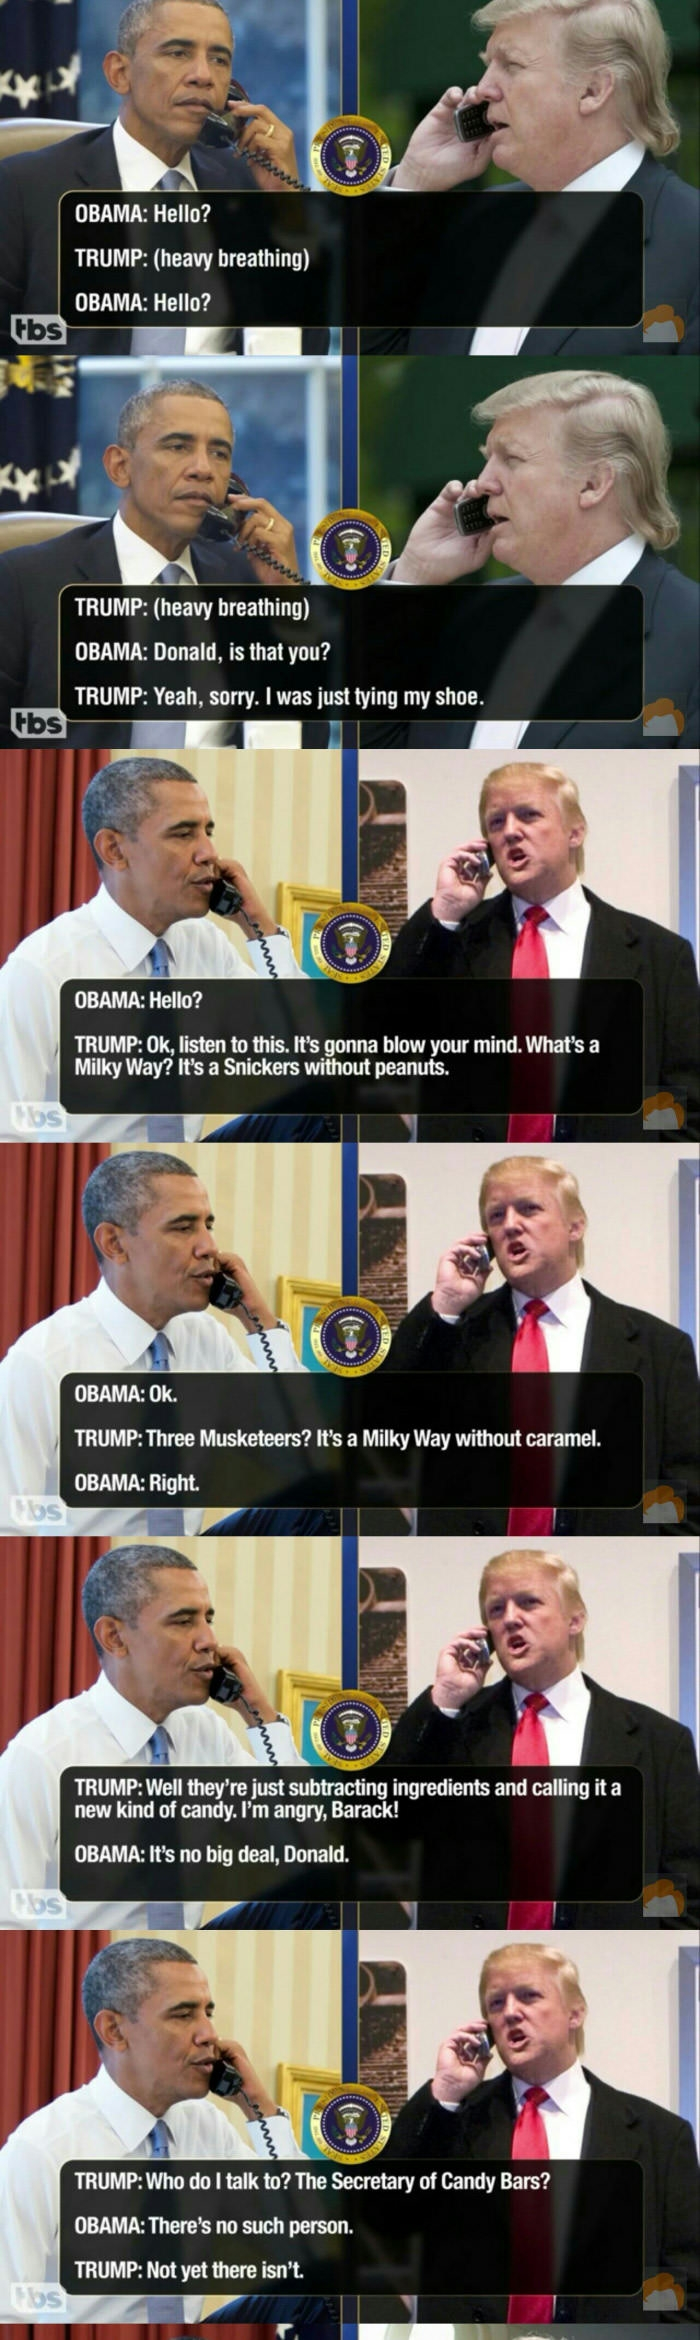 Leaked transcripts of Trump & Obama pt.1